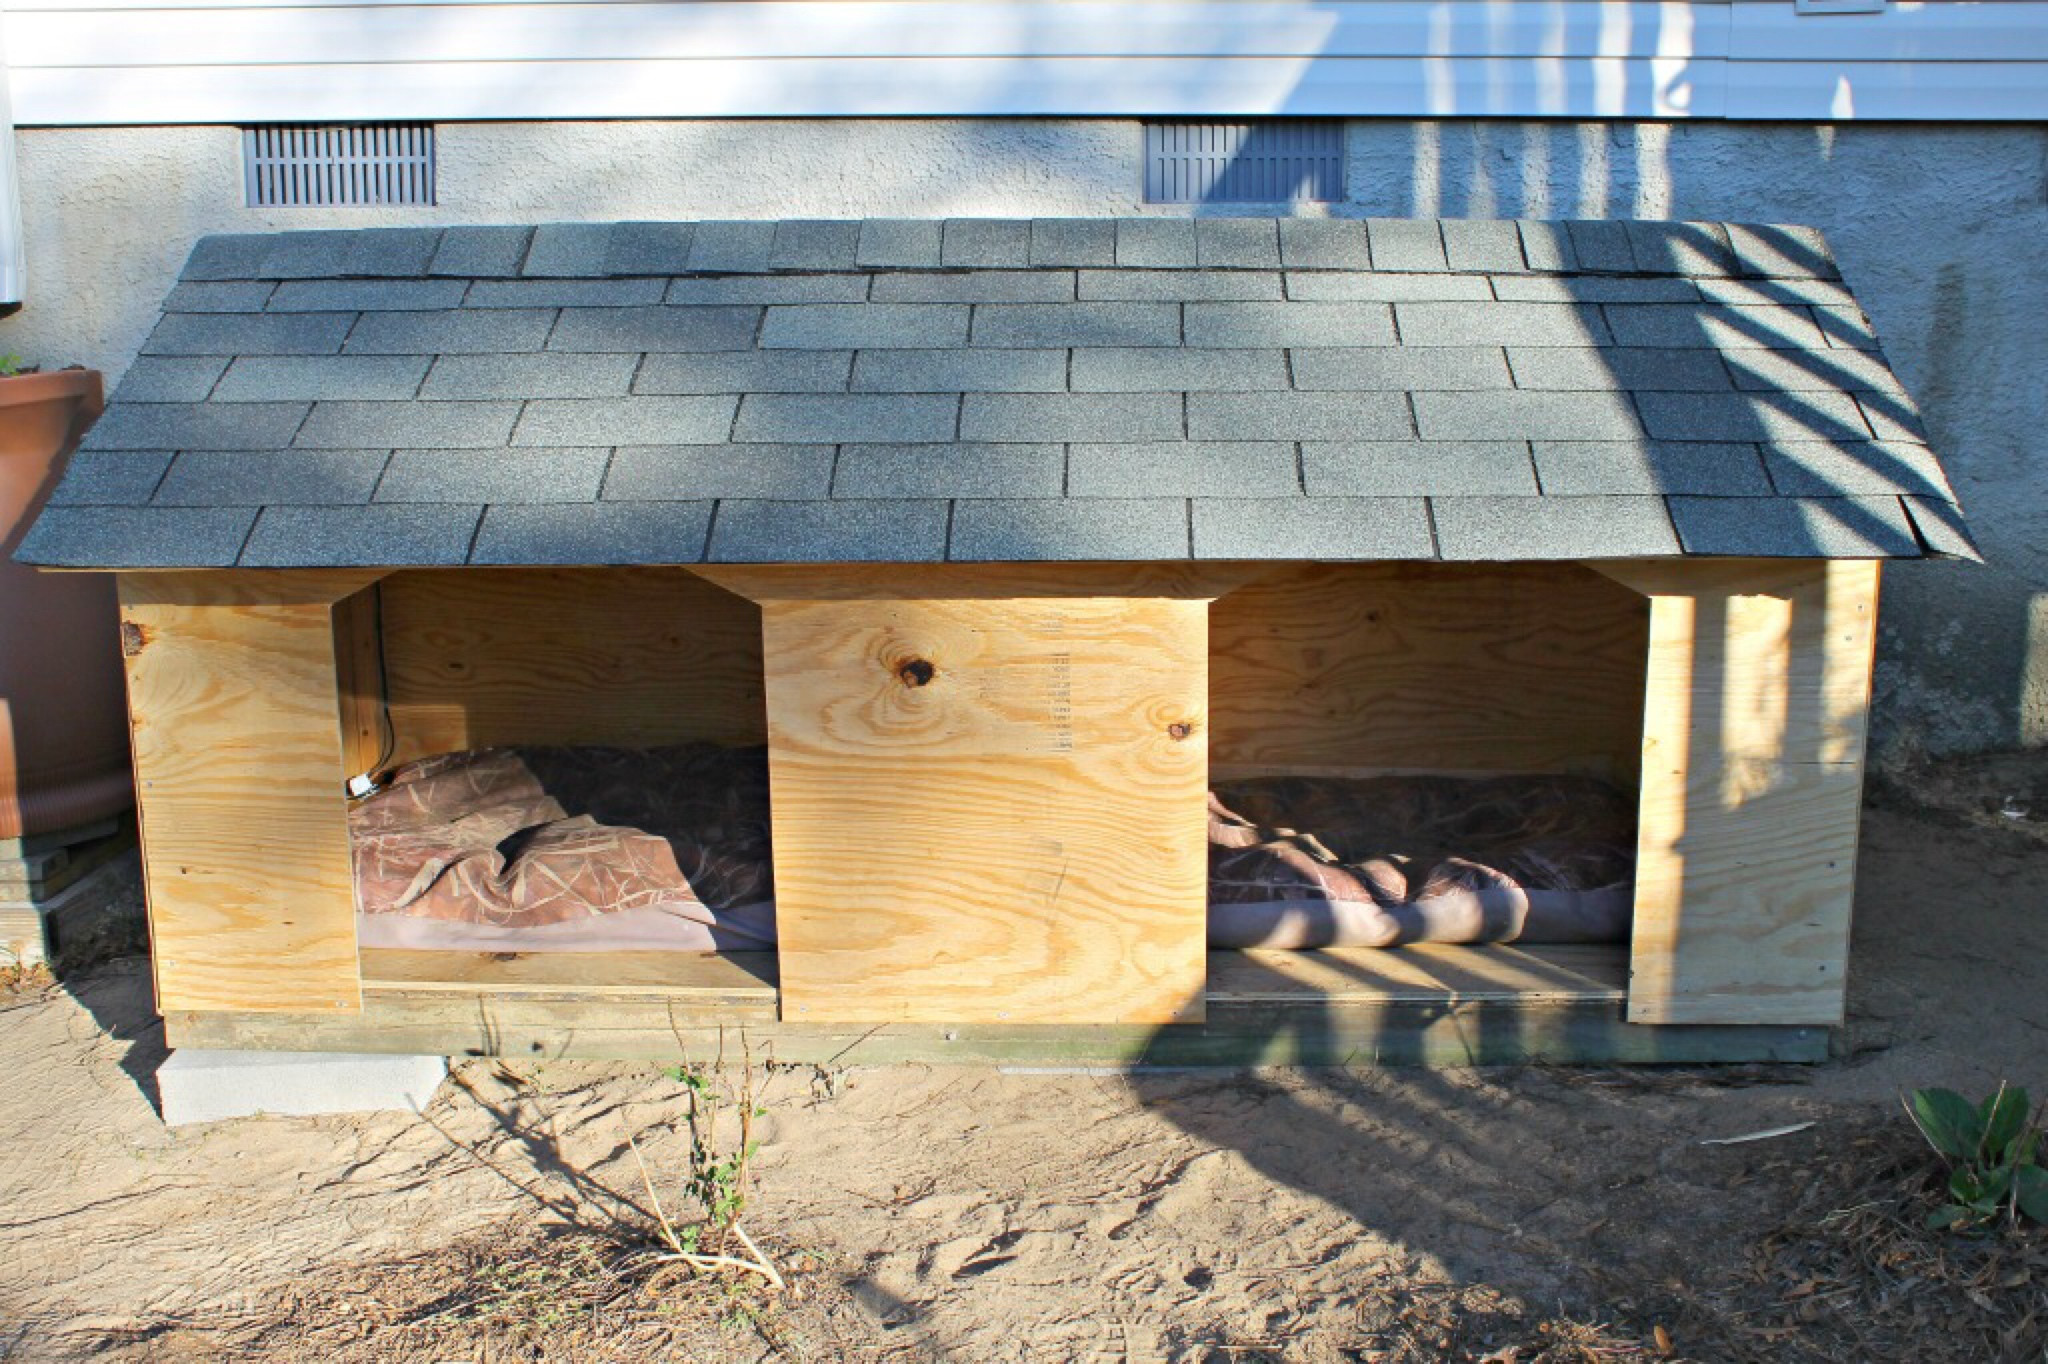 Best ideas about DIY Dog House Ideas . Save or Pin 5 Droolworthy DIY Dog House Plans Now.